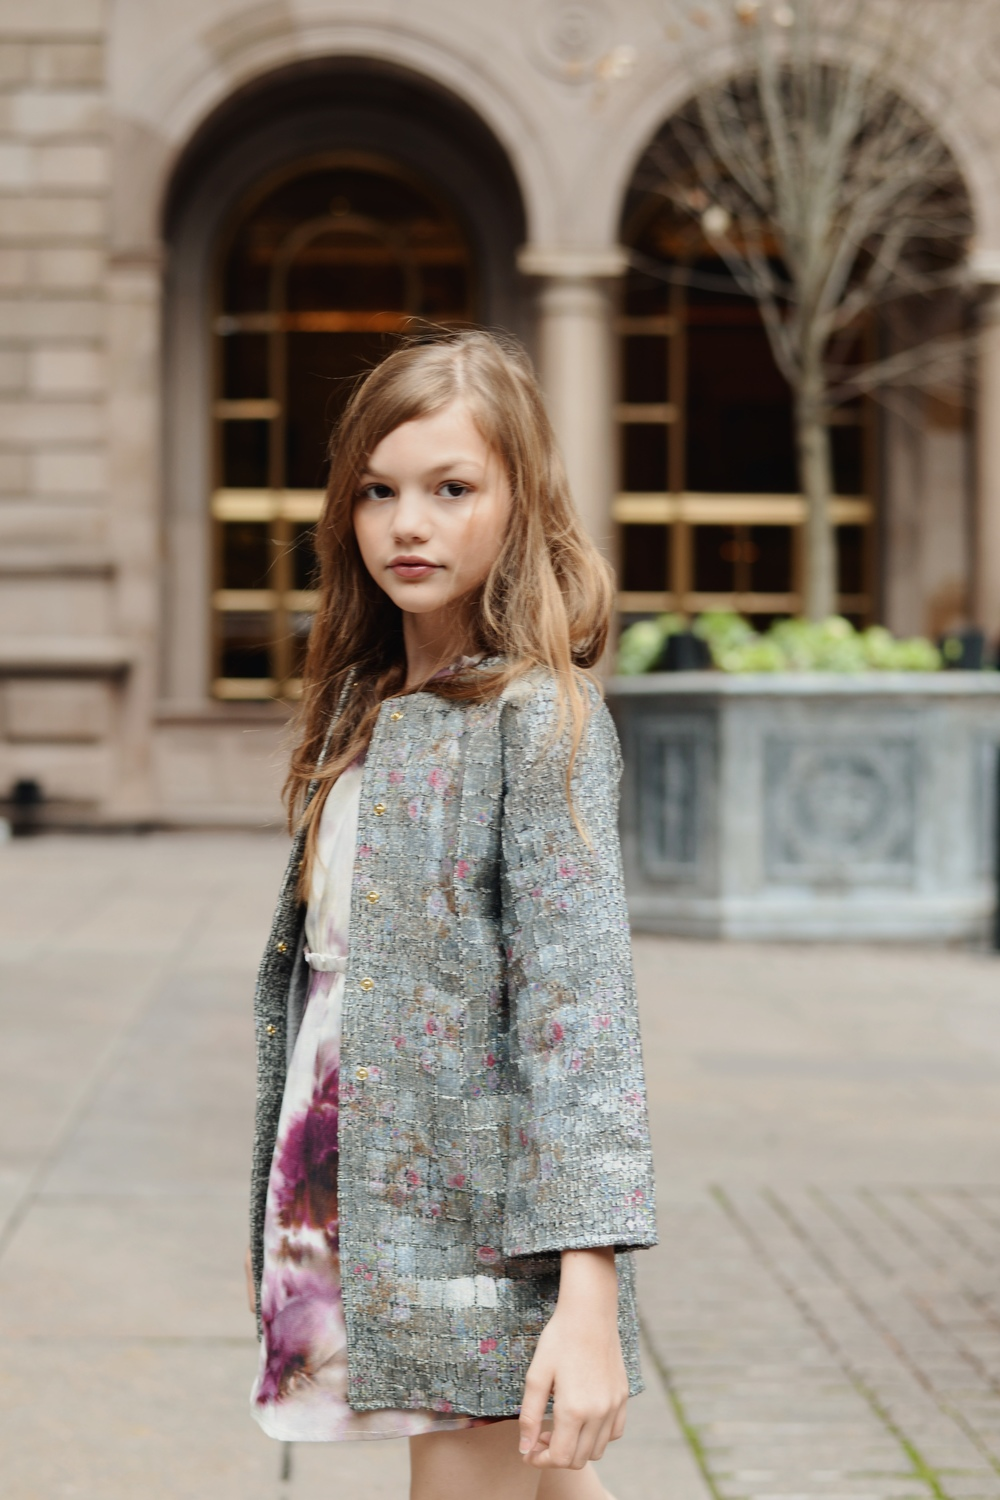 Enfant Street Style by Gina Kim Photography Lamantine Paris